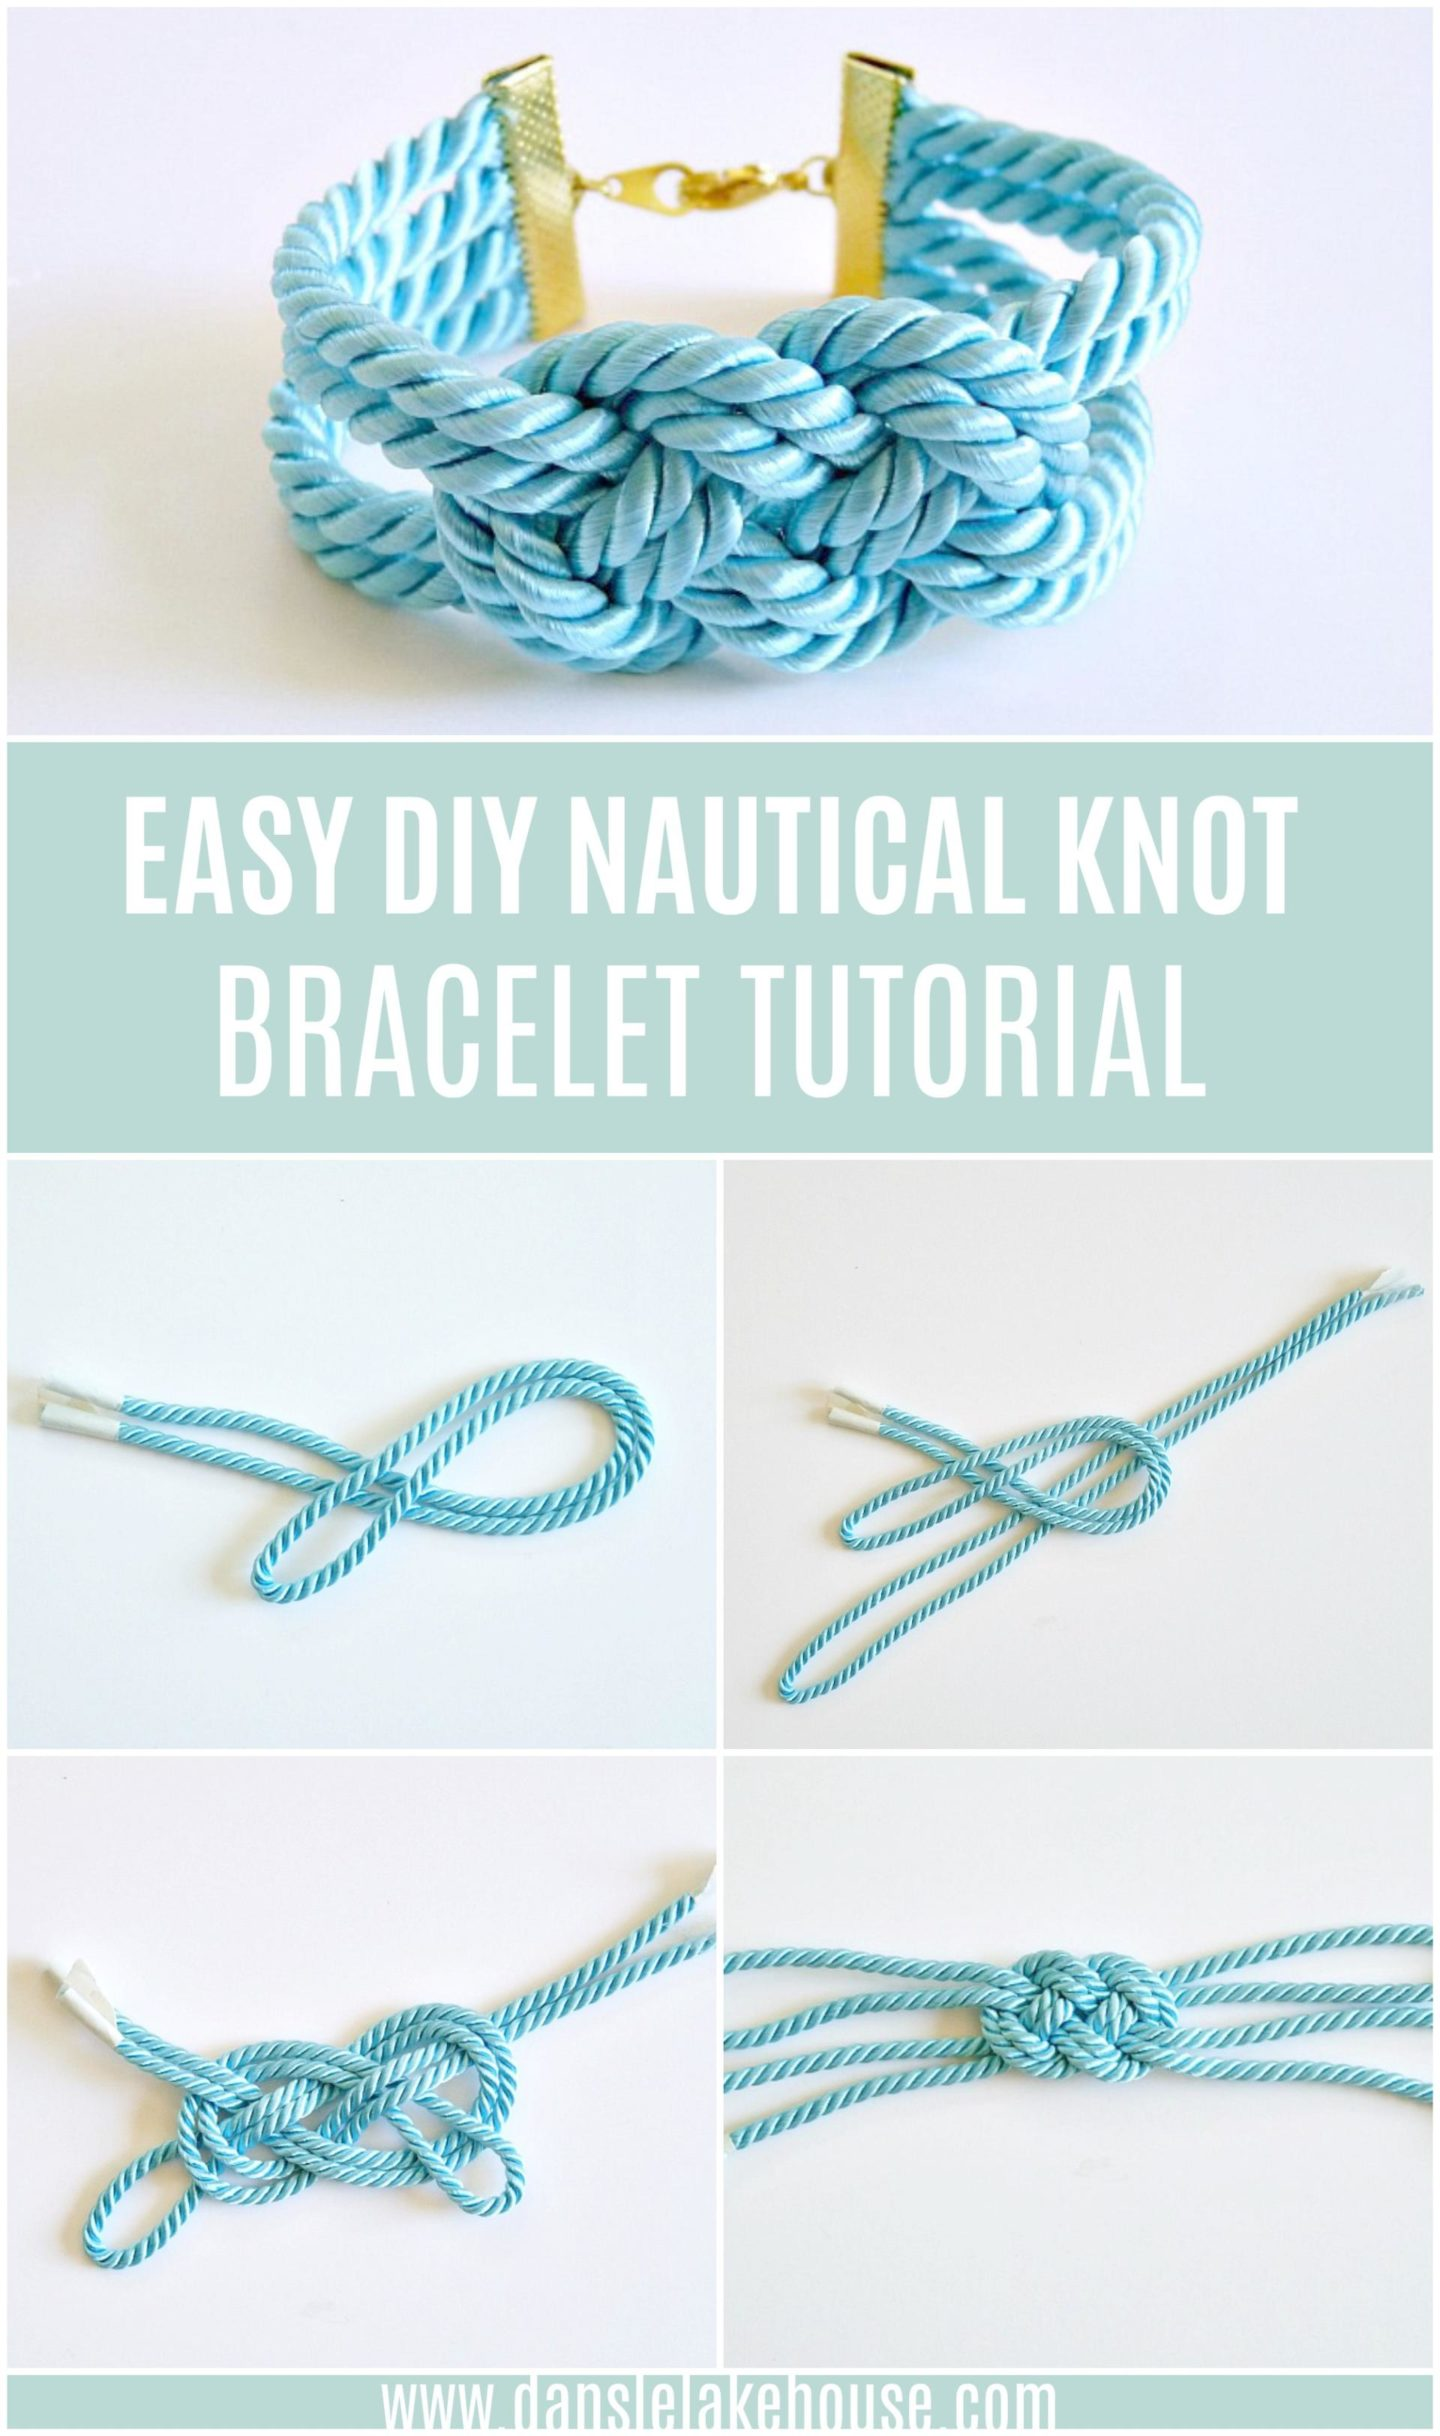 How to Make an Easy DIY Nautical Knot Bracelet Tutorial